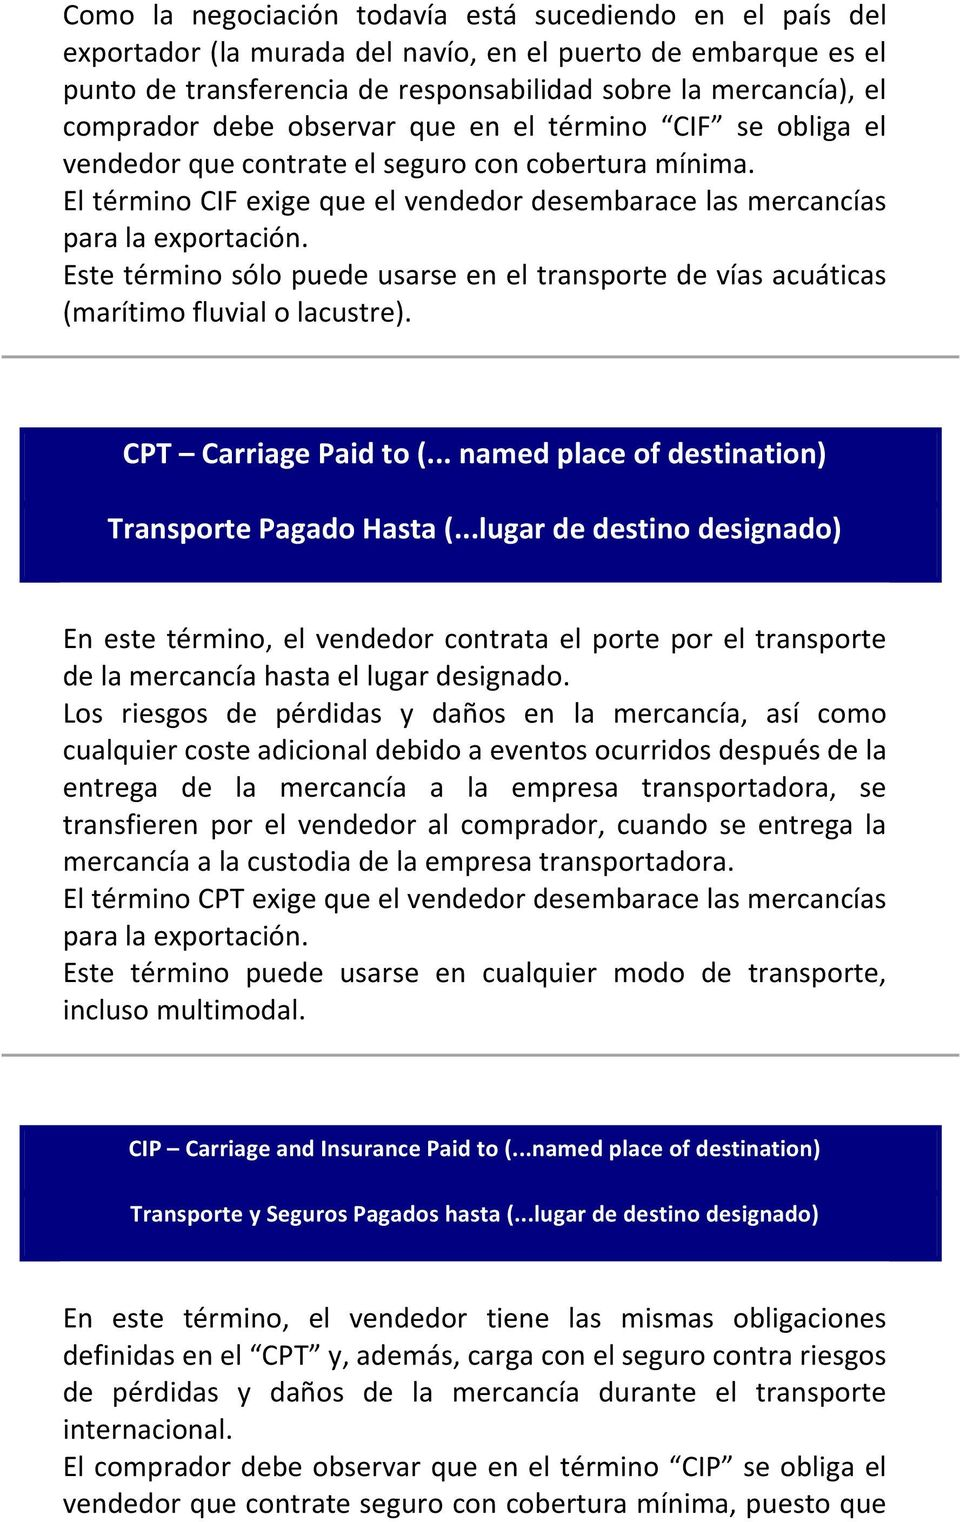 Estetérminosólopuedeusarseeneltransportedevíasacuáticas (marítimofluvialolacustre). CPT$ $Carriage$Paid$to$(...$named$place$of$destination) Transporte$Pagado$Hasta$(.